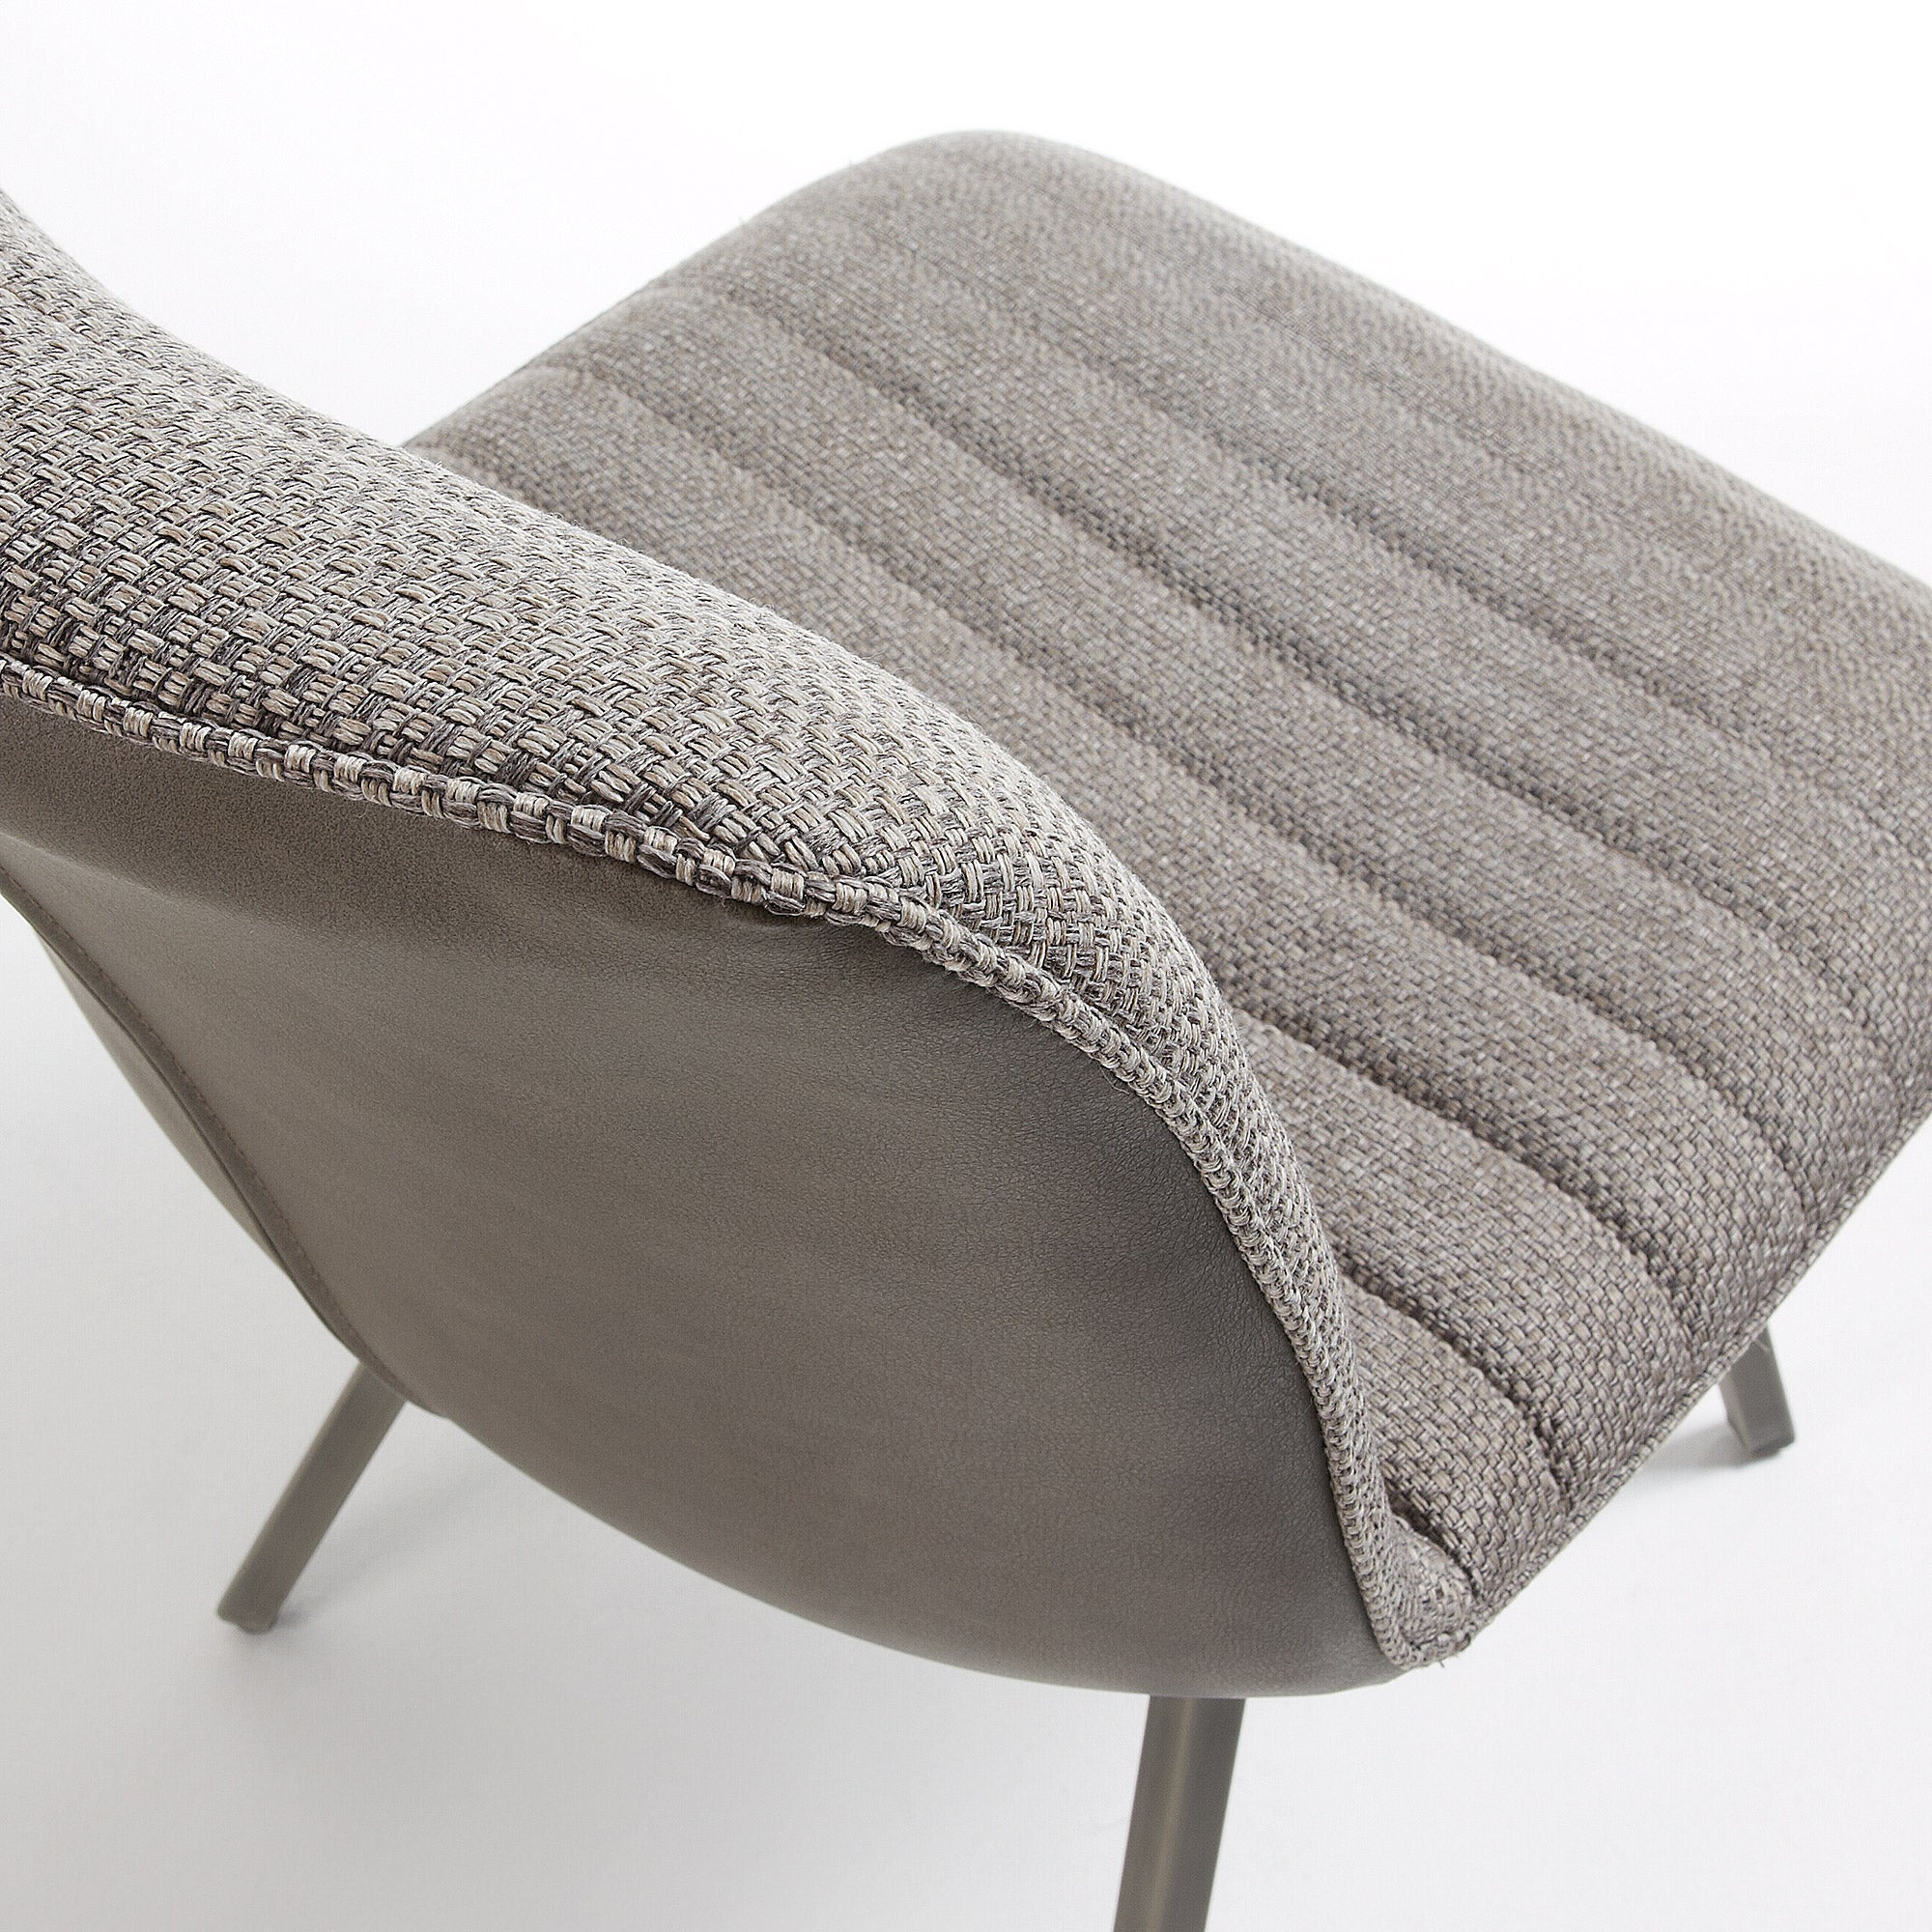 Lianne Chair Upholstered in Taupe Fabric